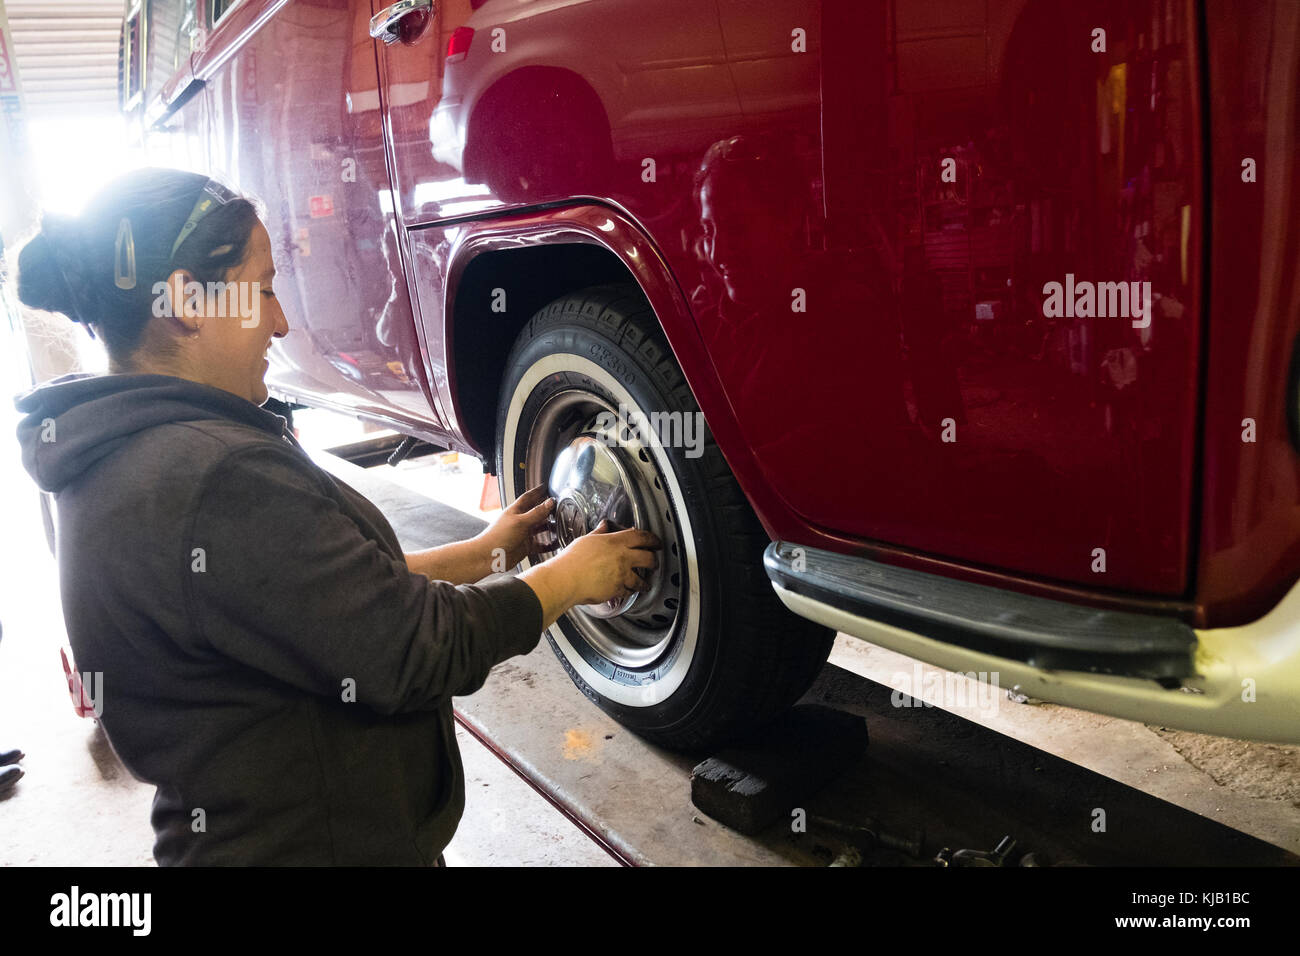 a female mechanic working in a small independent garage workshop replacing the wheels and hub